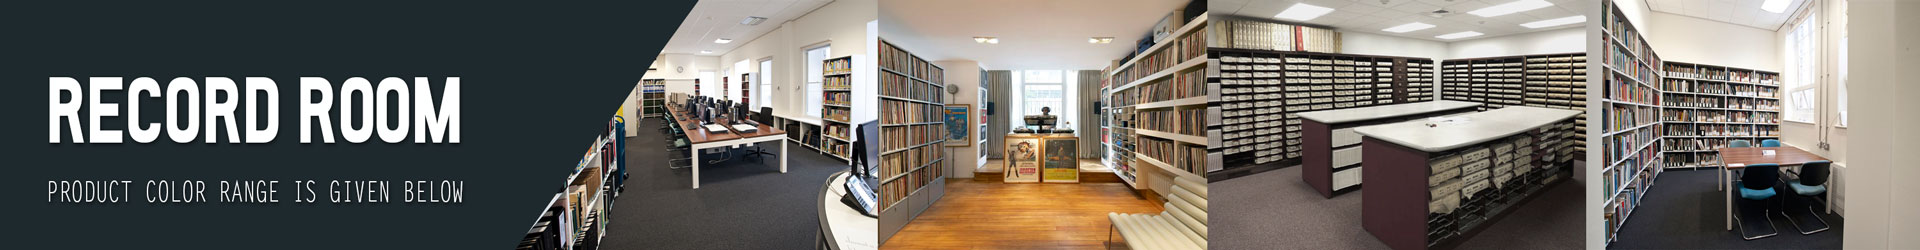 Record-Room